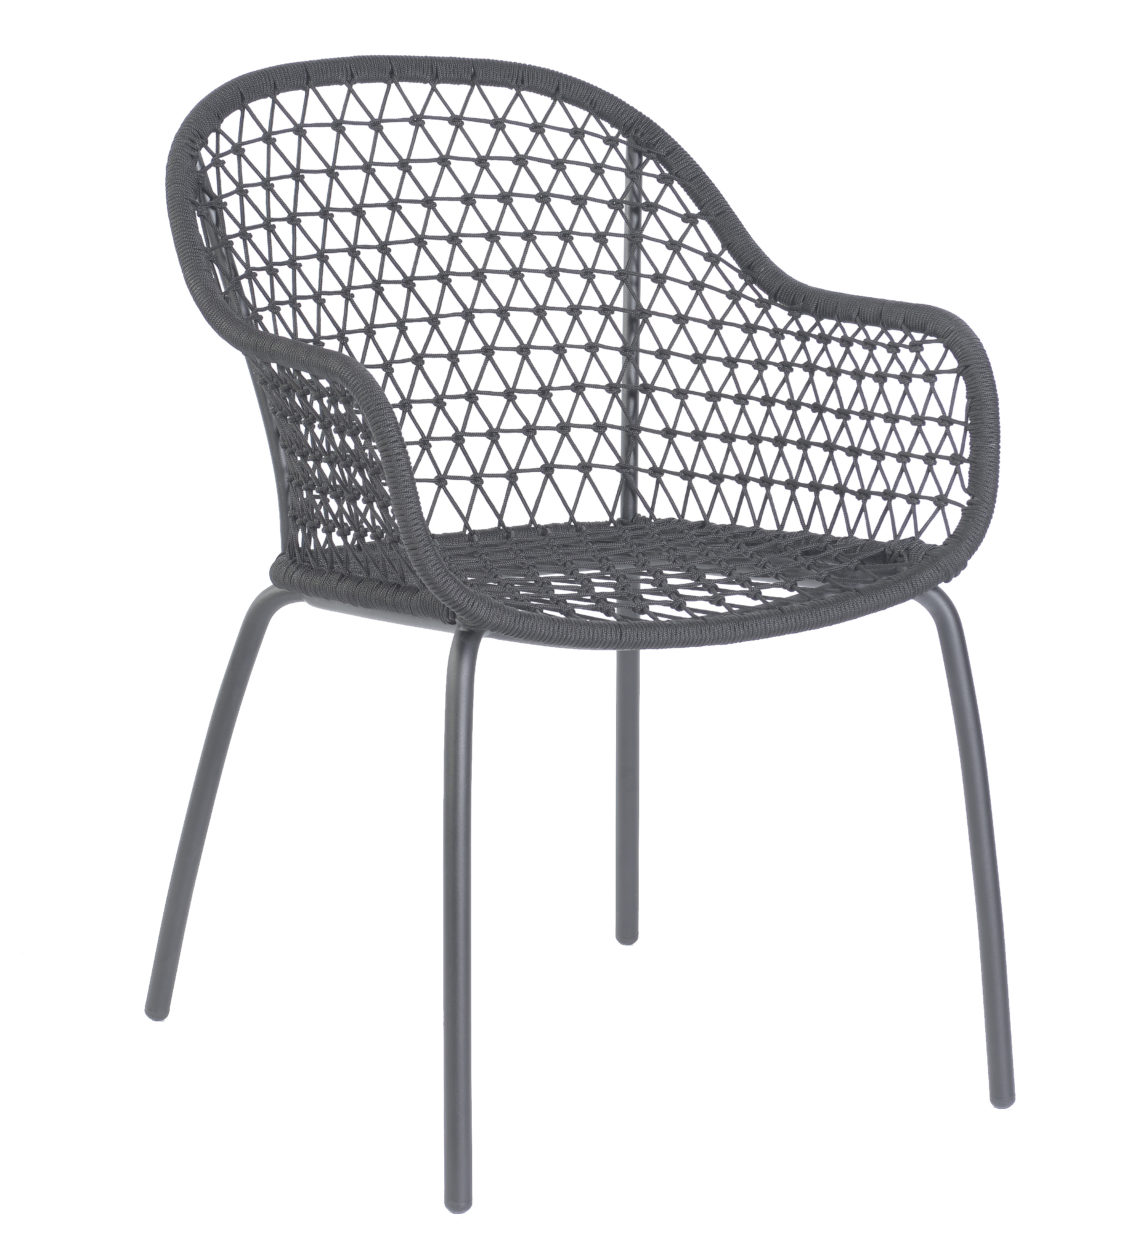 Max & Luuk Anna chair Rope M4050 lava